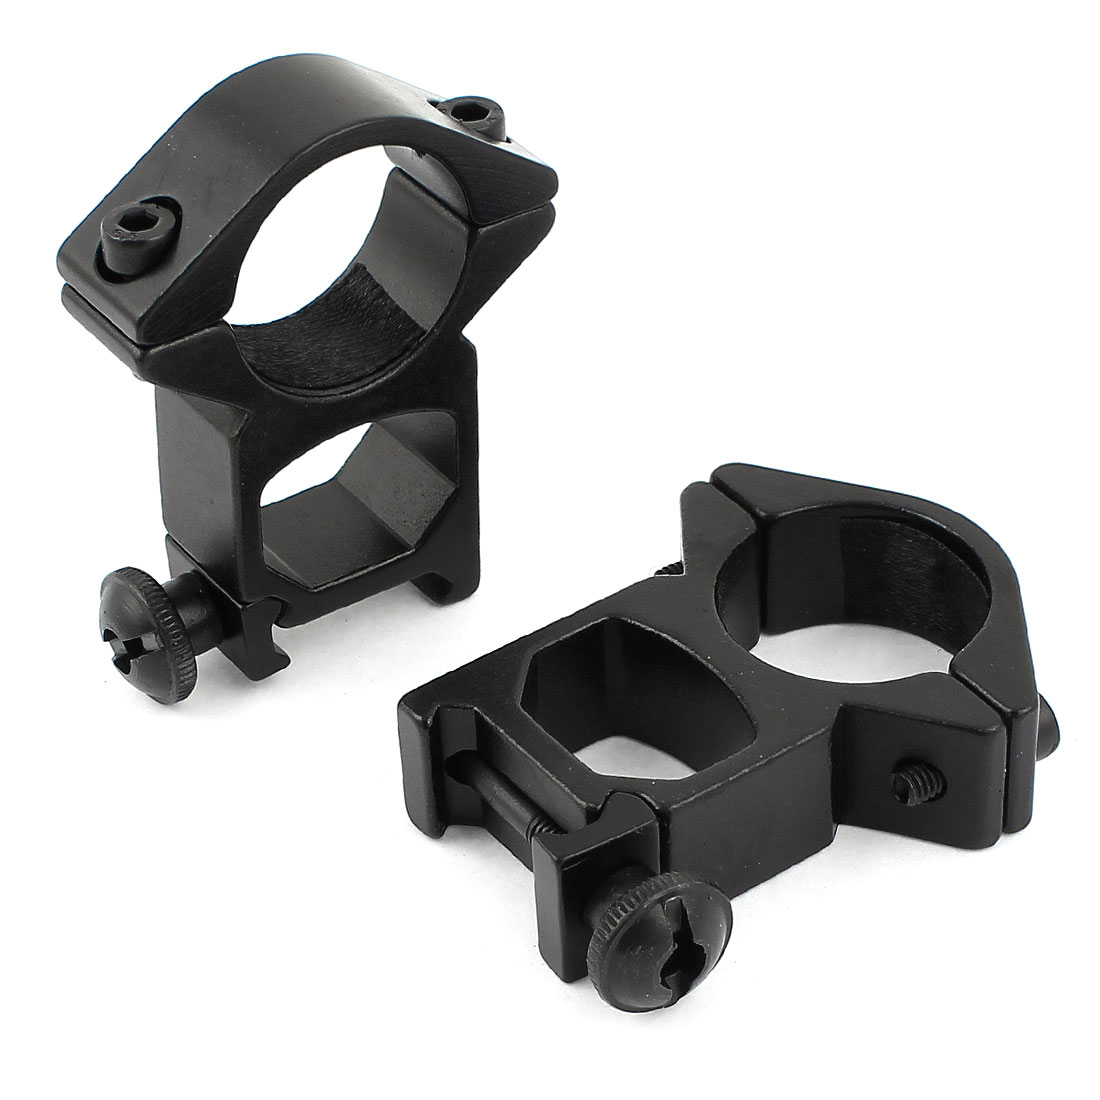 2 Pcs Alloy 25mm Ring Double Flashlight Mount Black w Hex Key